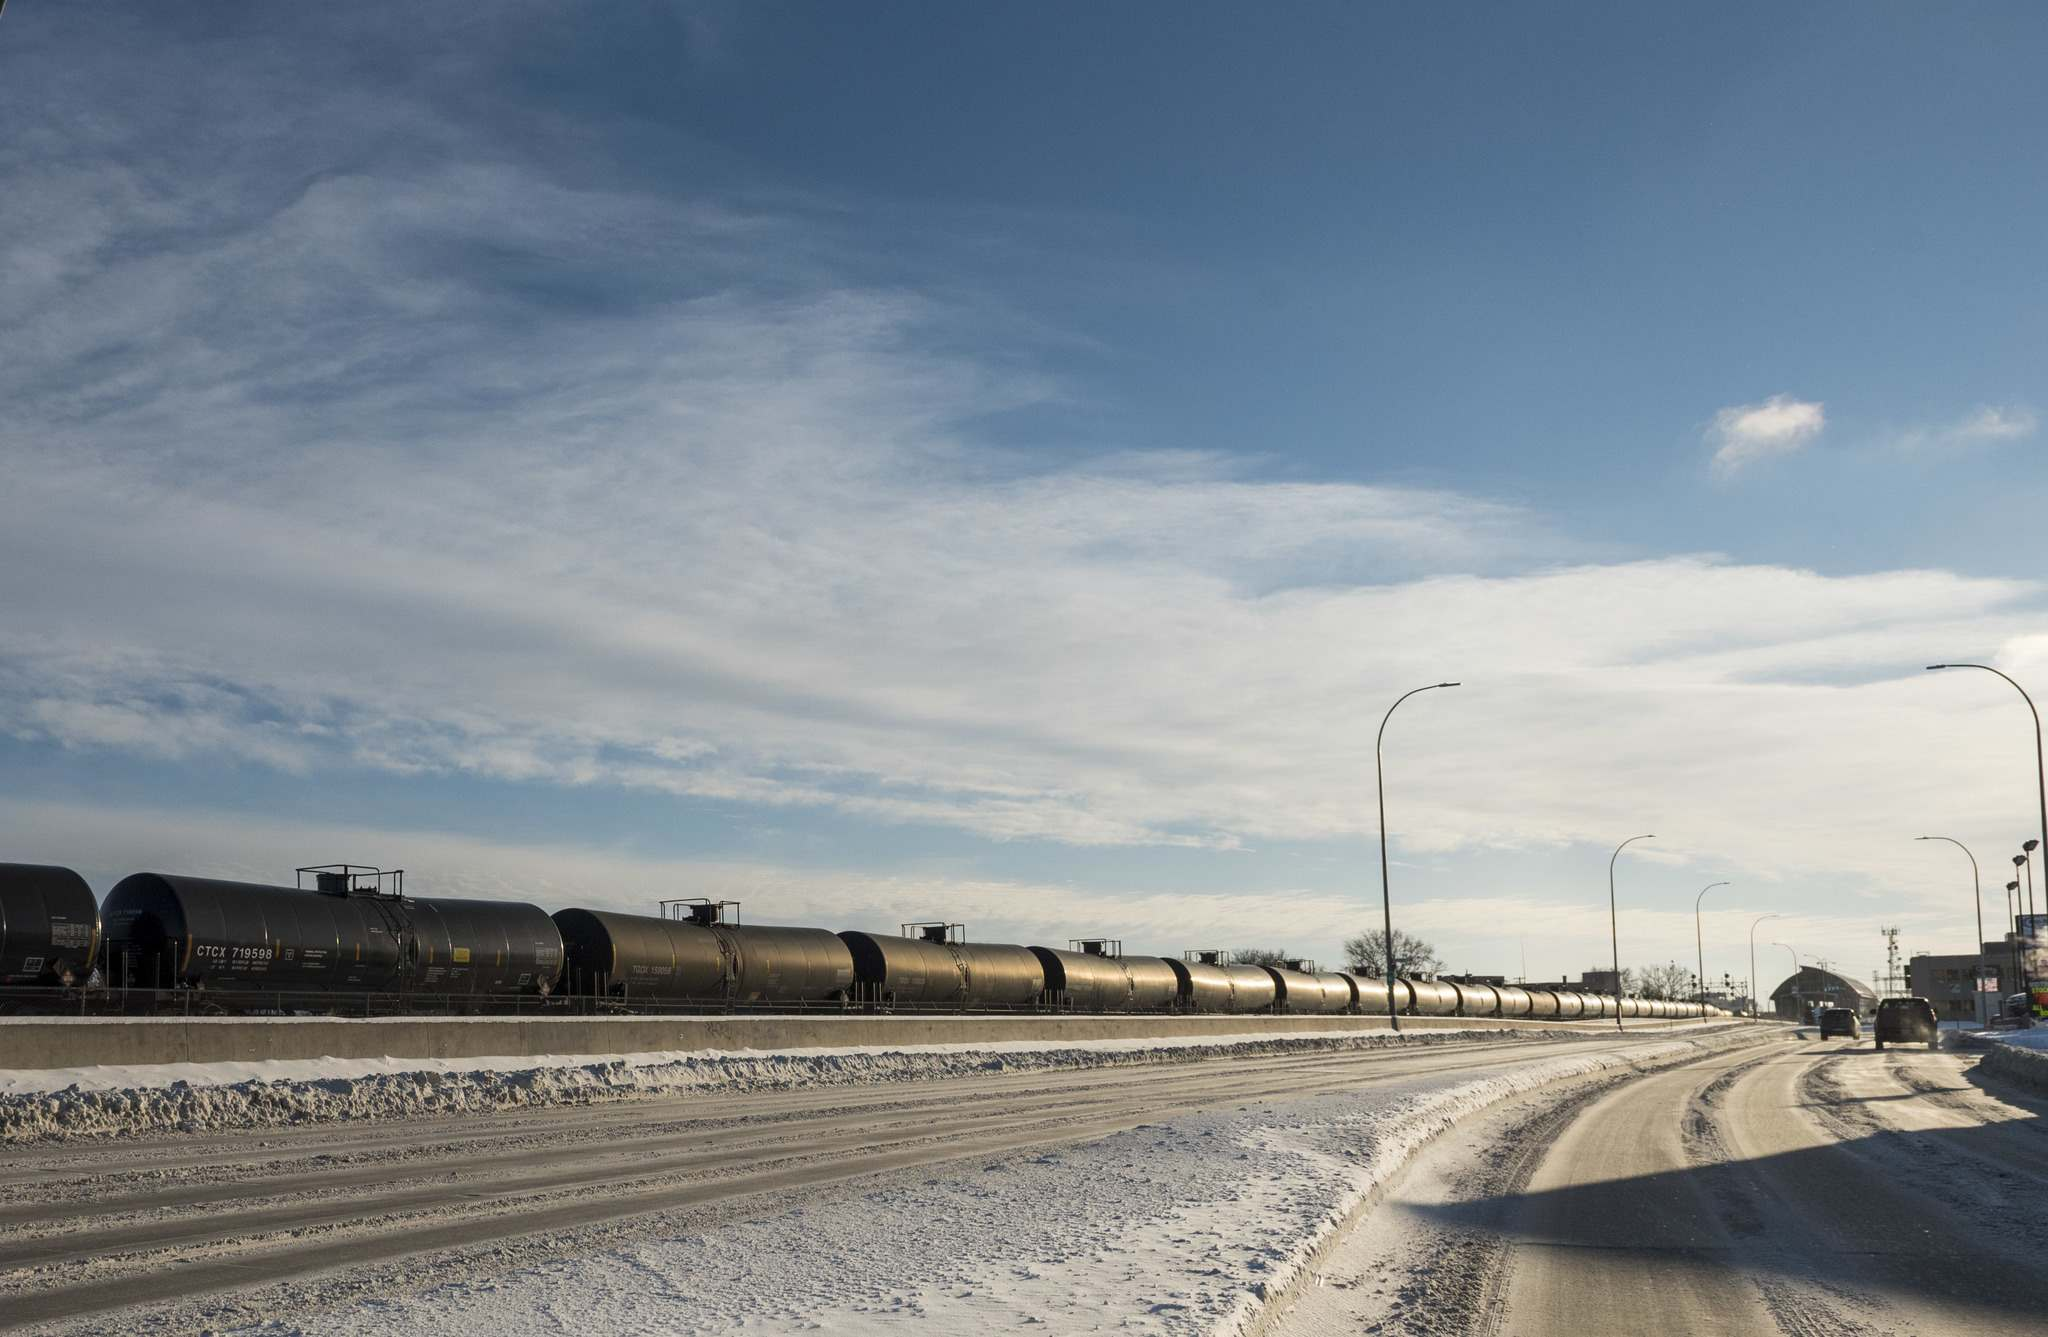 DAVID LIPNOWSKI / WINNIPEG FREE PRESS Files</p><p>Outside major cities, trains that had been limited to 40 km/h will be able to travel as fast as 80 km/h in non-signalled zones, which tend to be sparsely populated.</p></p>